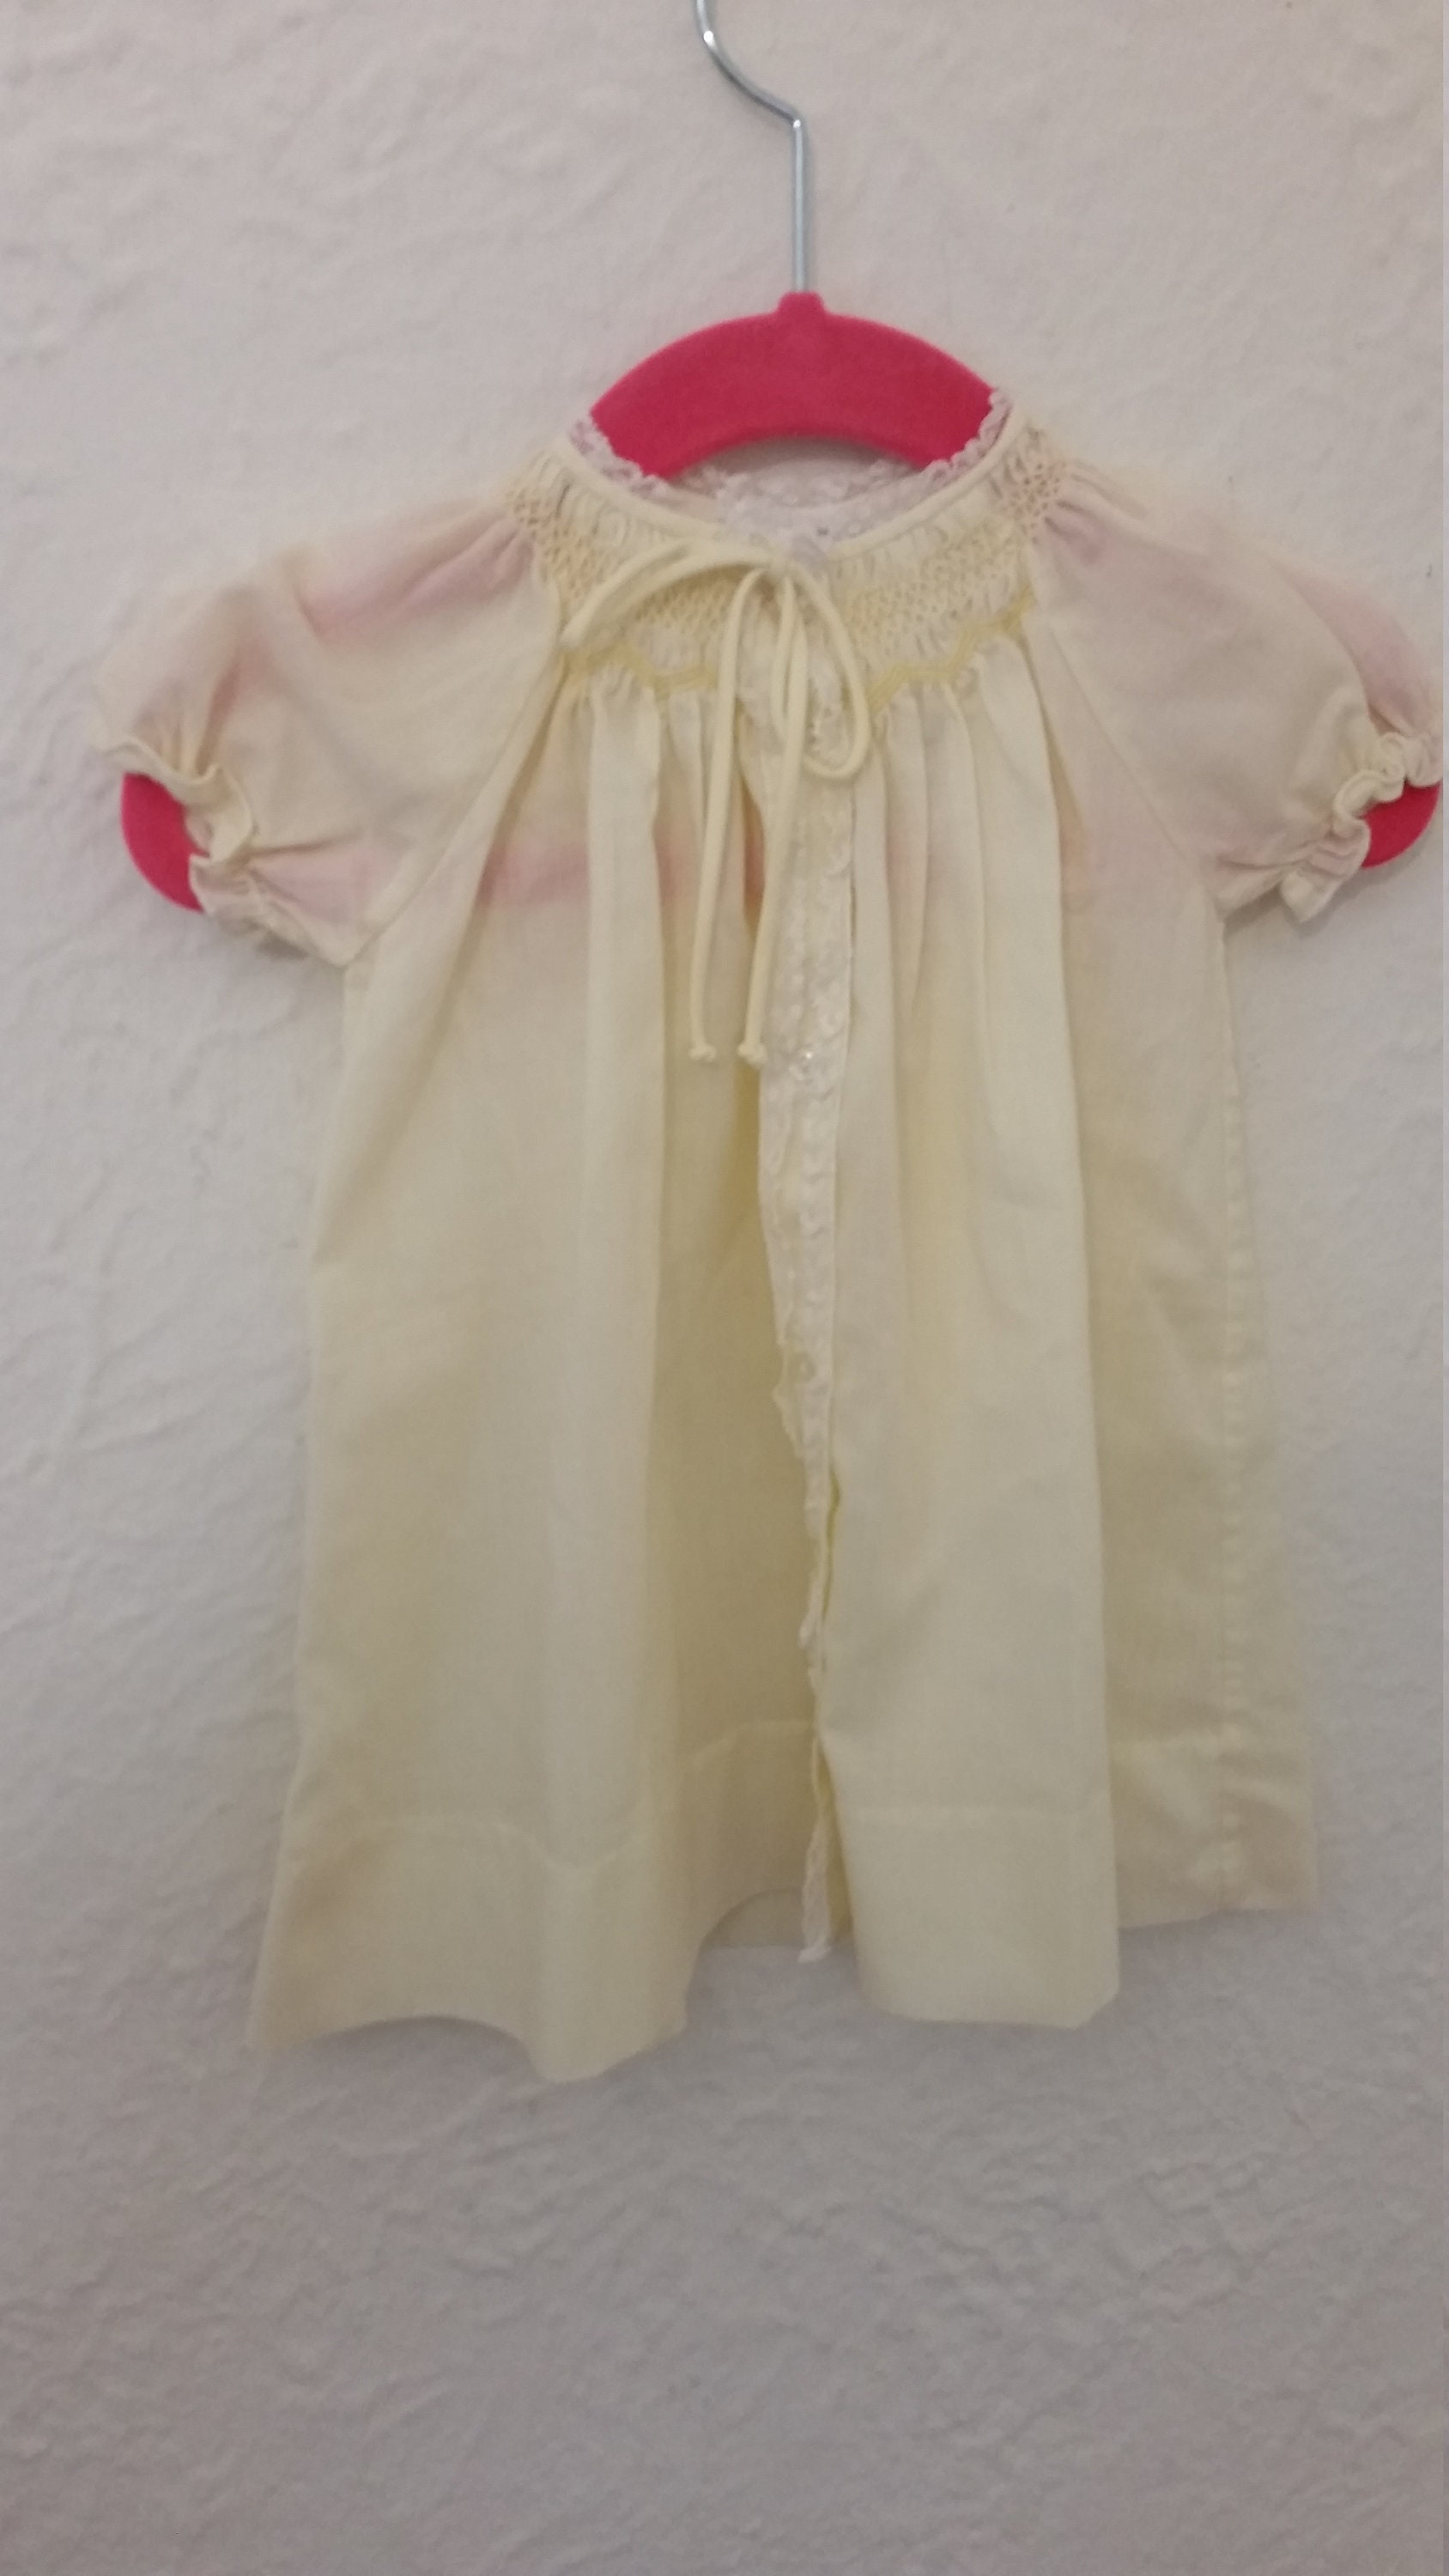 80s Dresses | Casual to Party Dresses Vintage Infant Dress Newborn To 6 Mos PolyCotton Blend Pale Yellow Button From Bodice Hem Cap Sleeves Made By Feltman Philippines 1980S $6.00 AT vintagedancer.com